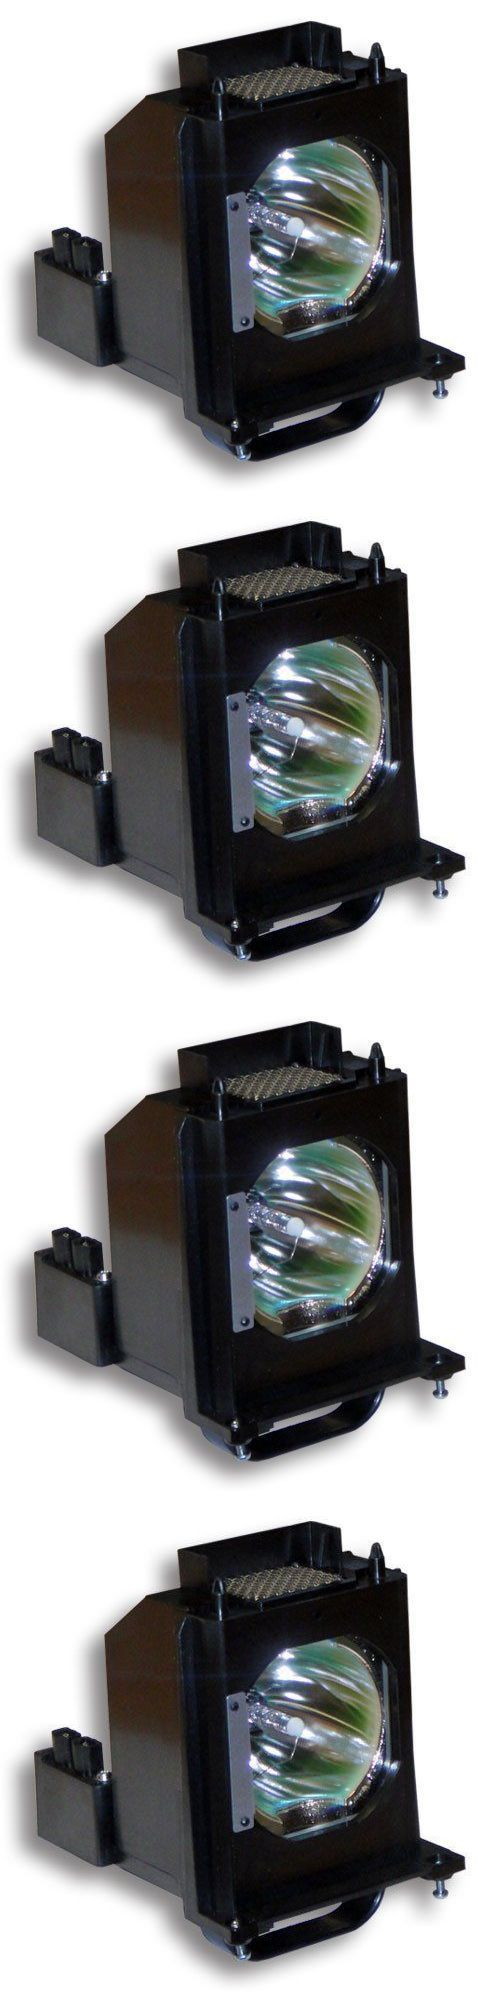 Rear-Projection TV Lamps: Mitsubishi 915B403001 Replacement Lamp Tv Dlp Projector Bulb Wd60735 To Wd82837 -> BUY IT NOW ONLY: $30.2 on eBay!